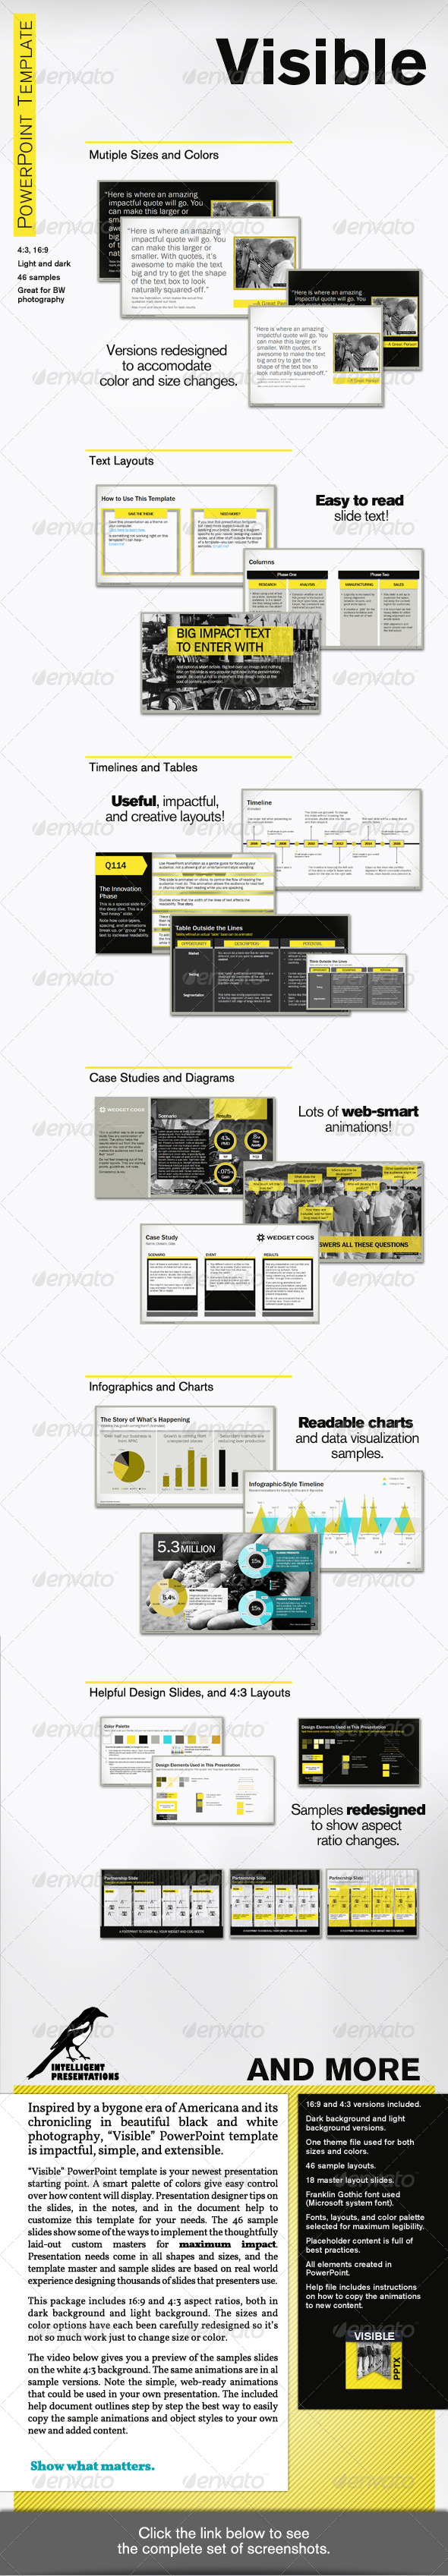 GraphicRiver Visible PowerPoint Template 5745005